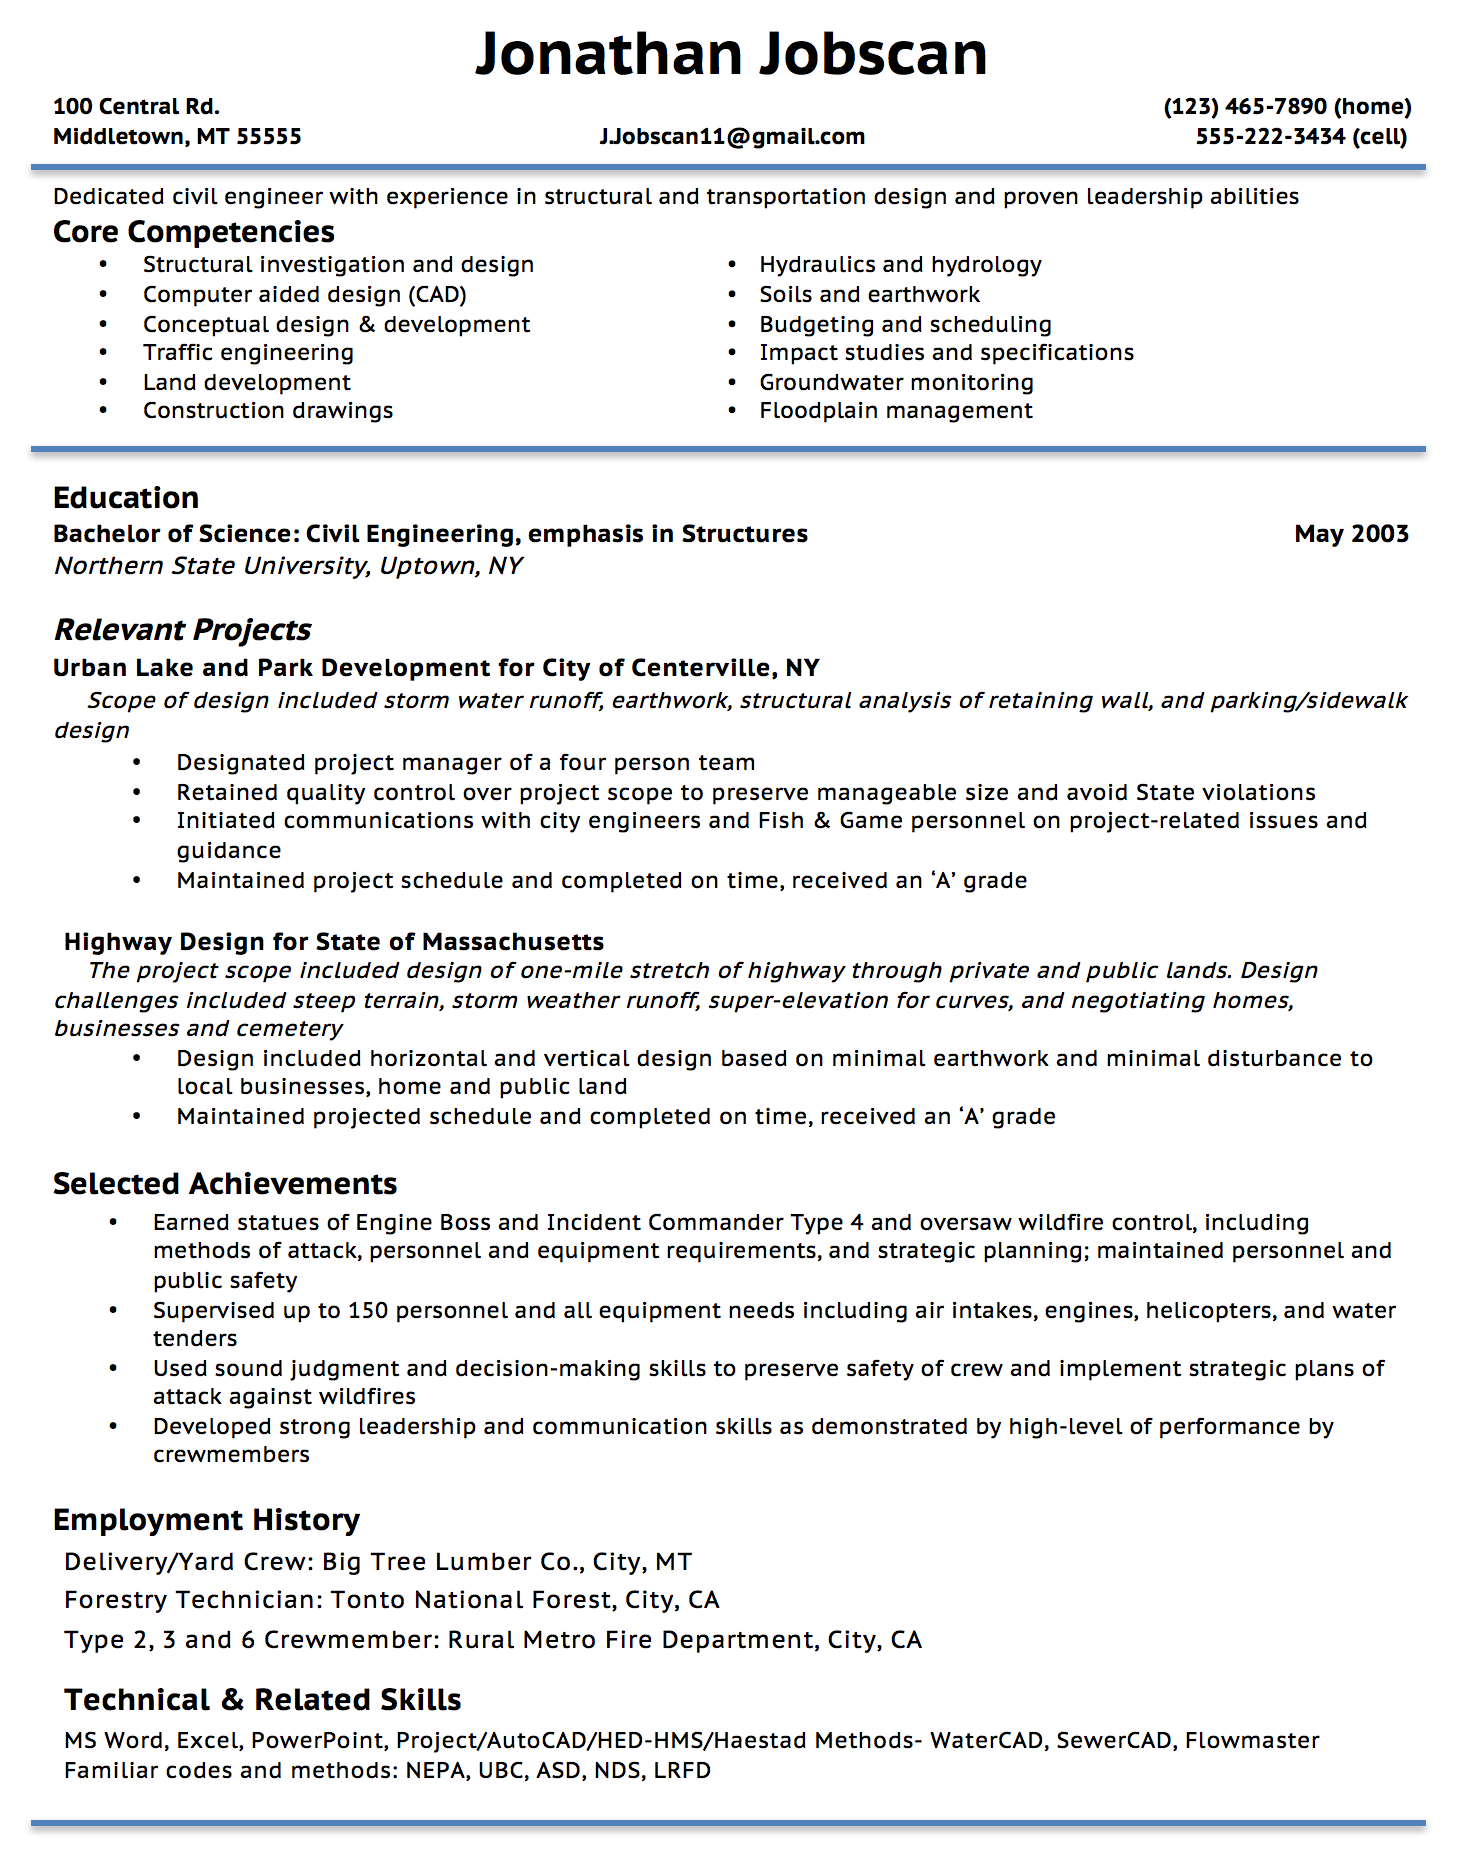 Opposenewapstandardsus  Inspiring Resume Writing Guide  Jobscan With Gorgeous Example Of A Functional Resume Format With Breathtaking Resume Format On Word Also What Is The Best Format For A Resume In Addition Resume Skills Customer Service And Job Experience On Resume As Well As Teacher Resume Tips Additionally Pharmacy Technician Resume Template From Jobscanco With Opposenewapstandardsus  Gorgeous Resume Writing Guide  Jobscan With Breathtaking Example Of A Functional Resume Format And Inspiring Resume Format On Word Also What Is The Best Format For A Resume In Addition Resume Skills Customer Service From Jobscanco